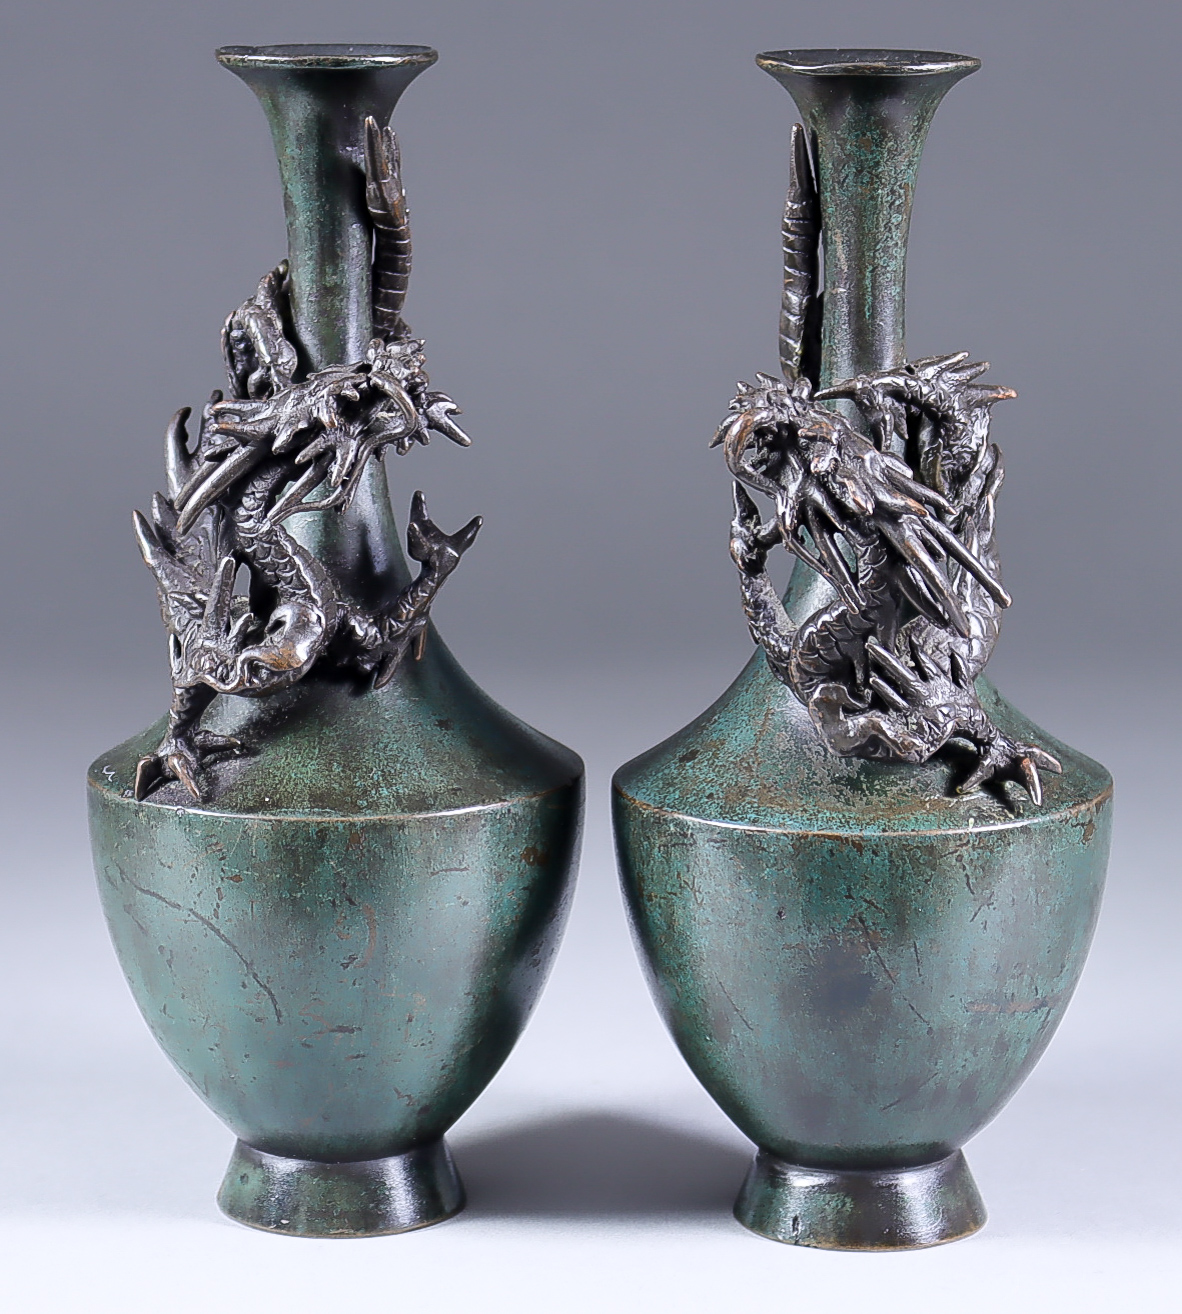 A Pair of Japanese Green and Brown Patinated Bronze Vases, Meiji Period, each cast with a dragon